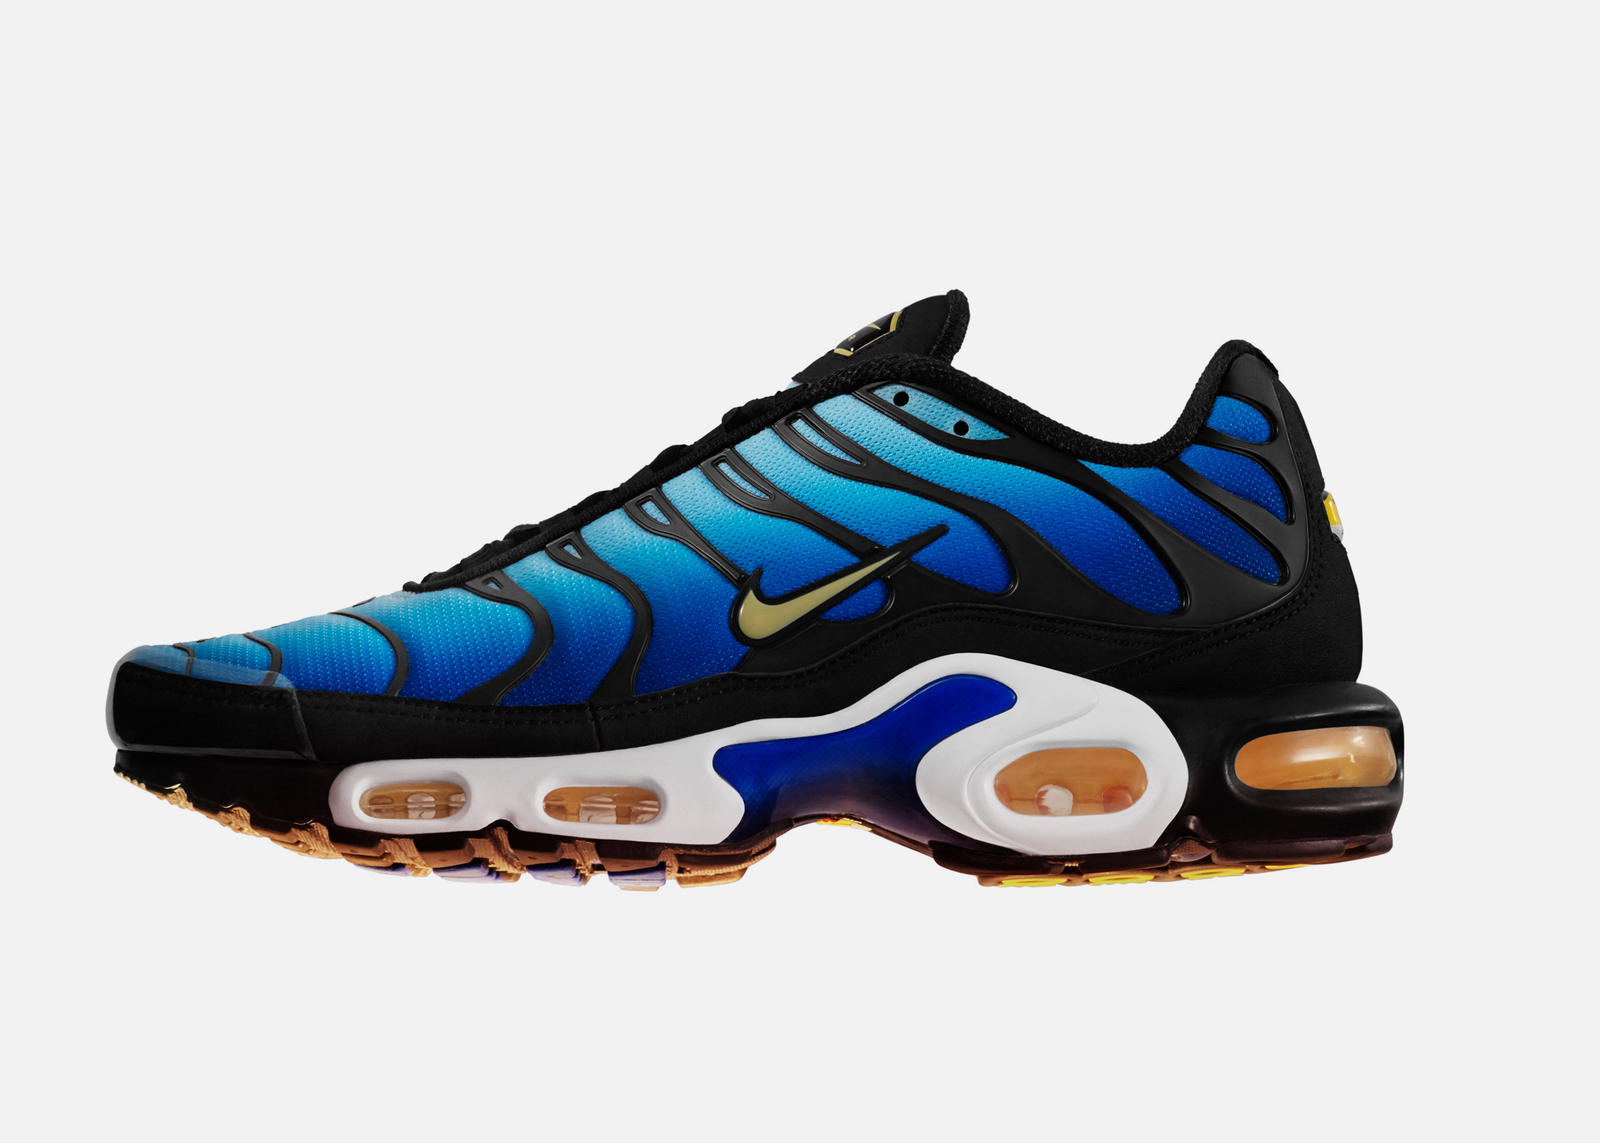 online retailer d49f4 be7c5 The Untold Story of the Nike Air Max Plus 20